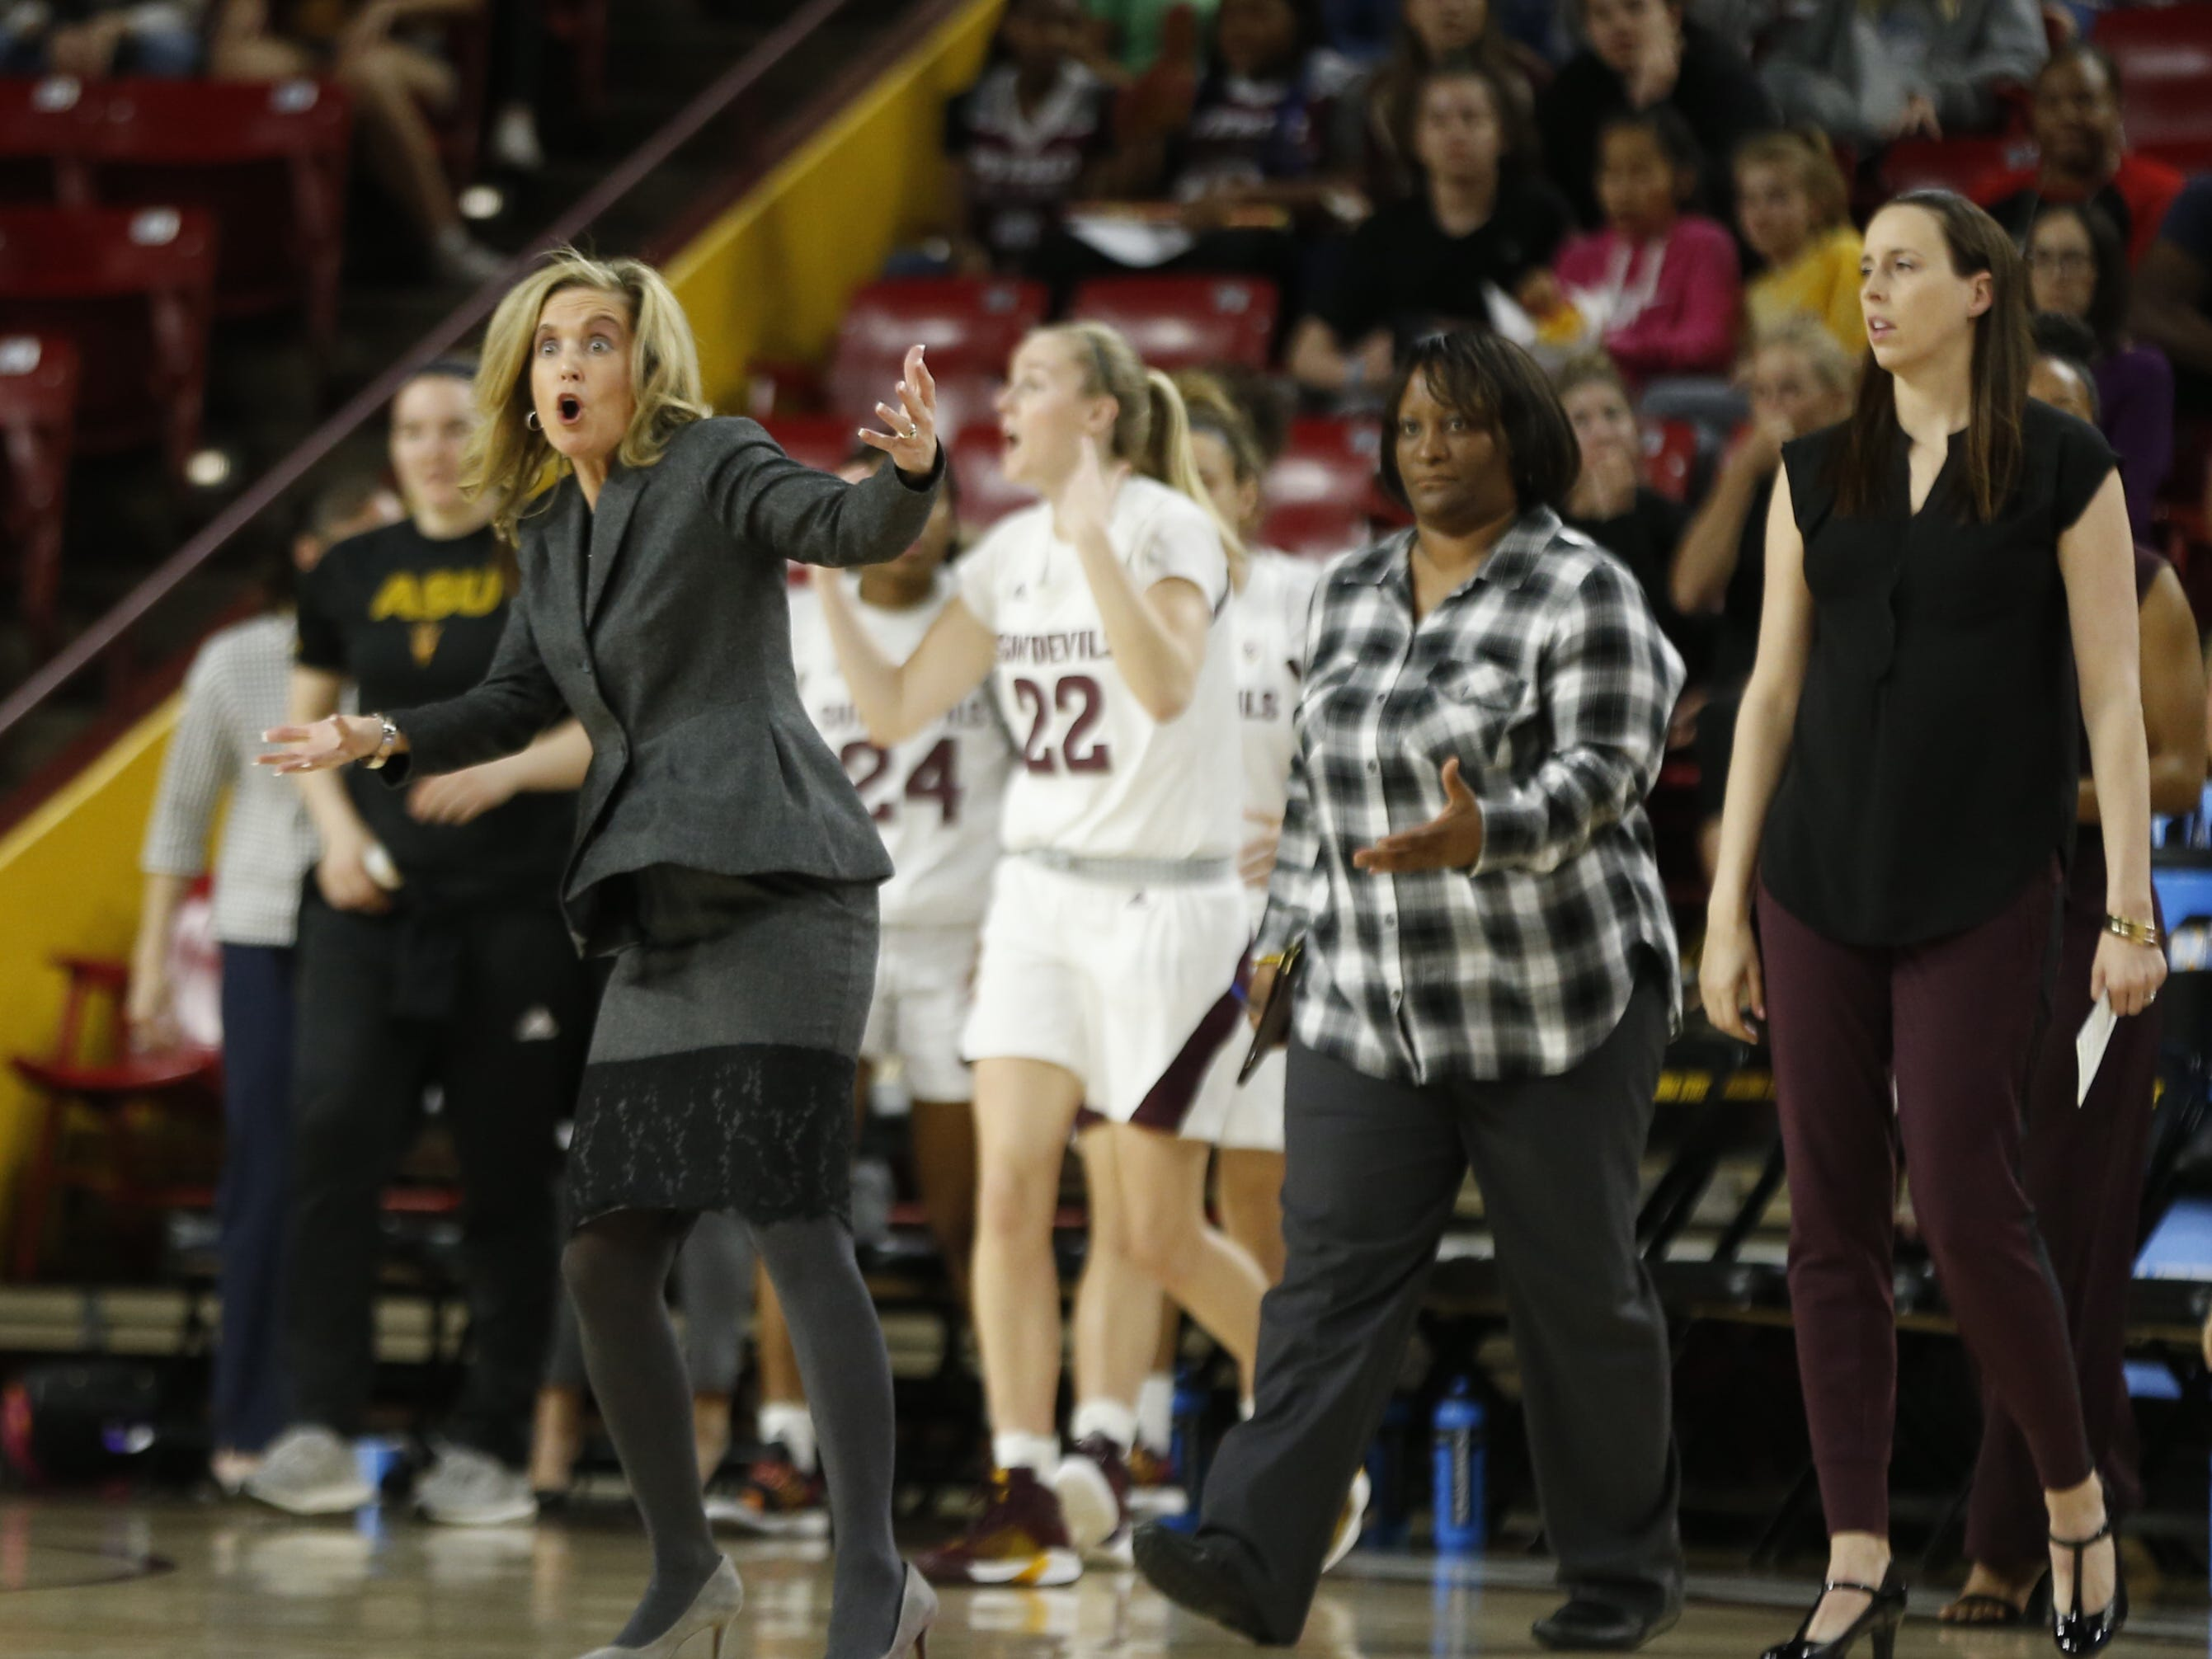 ASU's head coach Charli Turner Thorne yells to officials after calling a timeout during the first half at Wells Fargo Arena in Tempe, Ariz. on March 1, 2019.